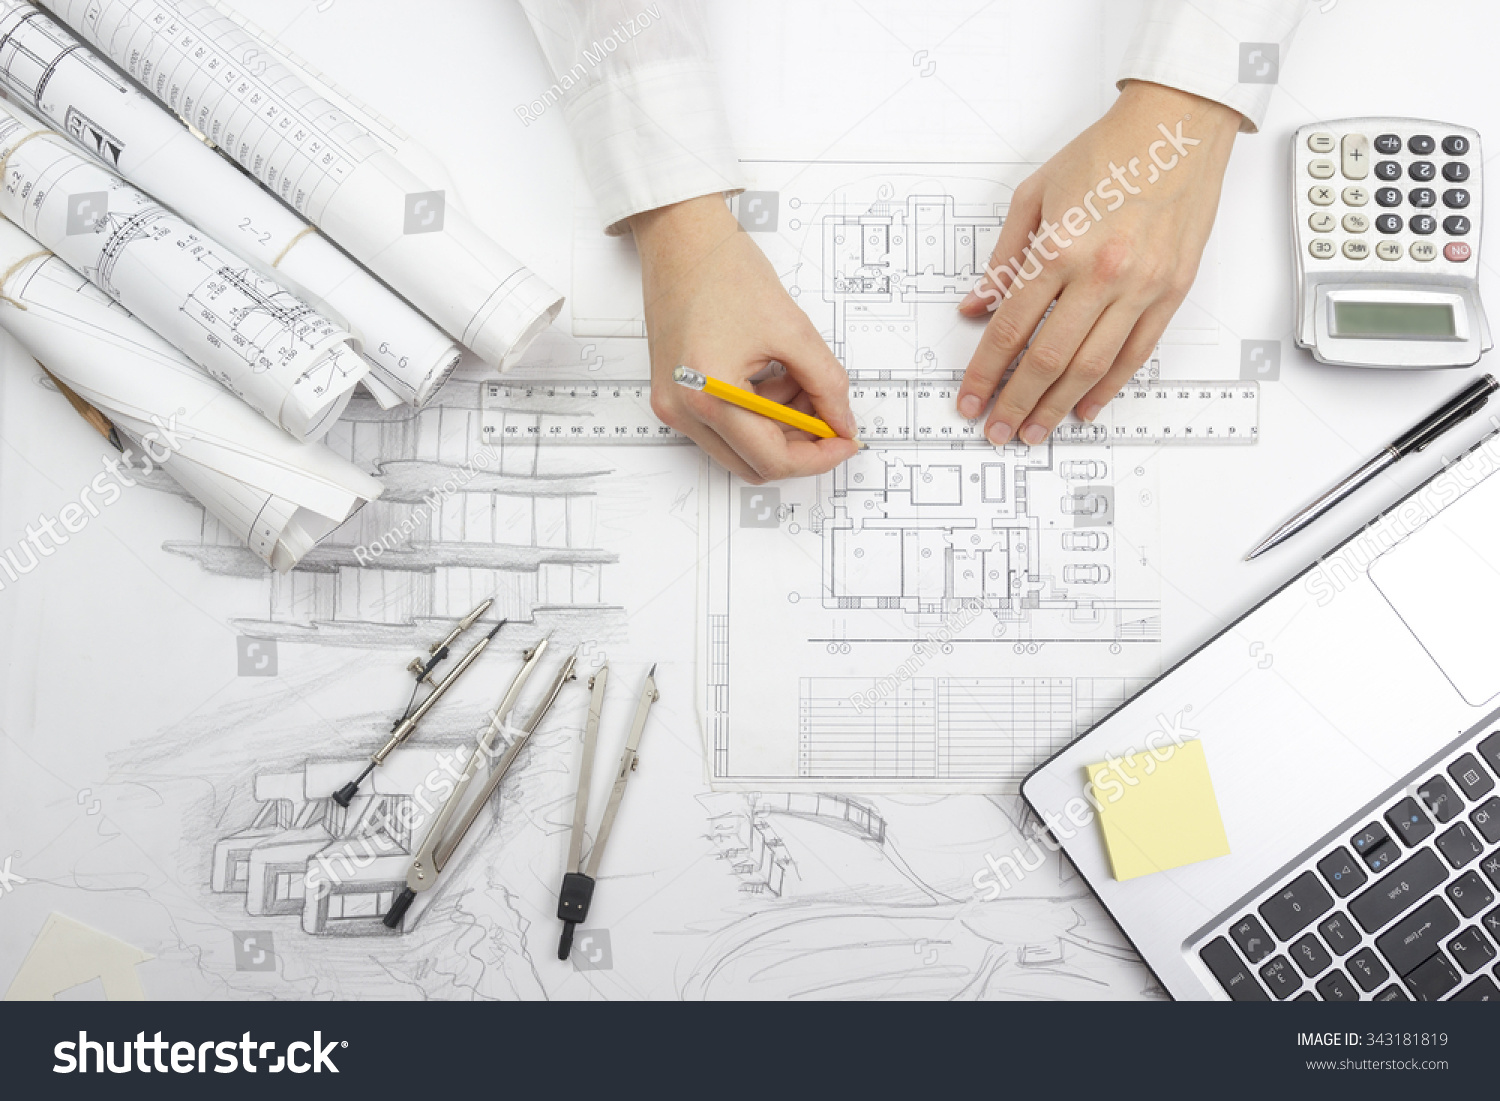 Http Www Shutterstock Com Pic 343181819 Stock Photo Architect Working On Blueprint Architects Workplace Architectural Project Blueprints Ruler Html